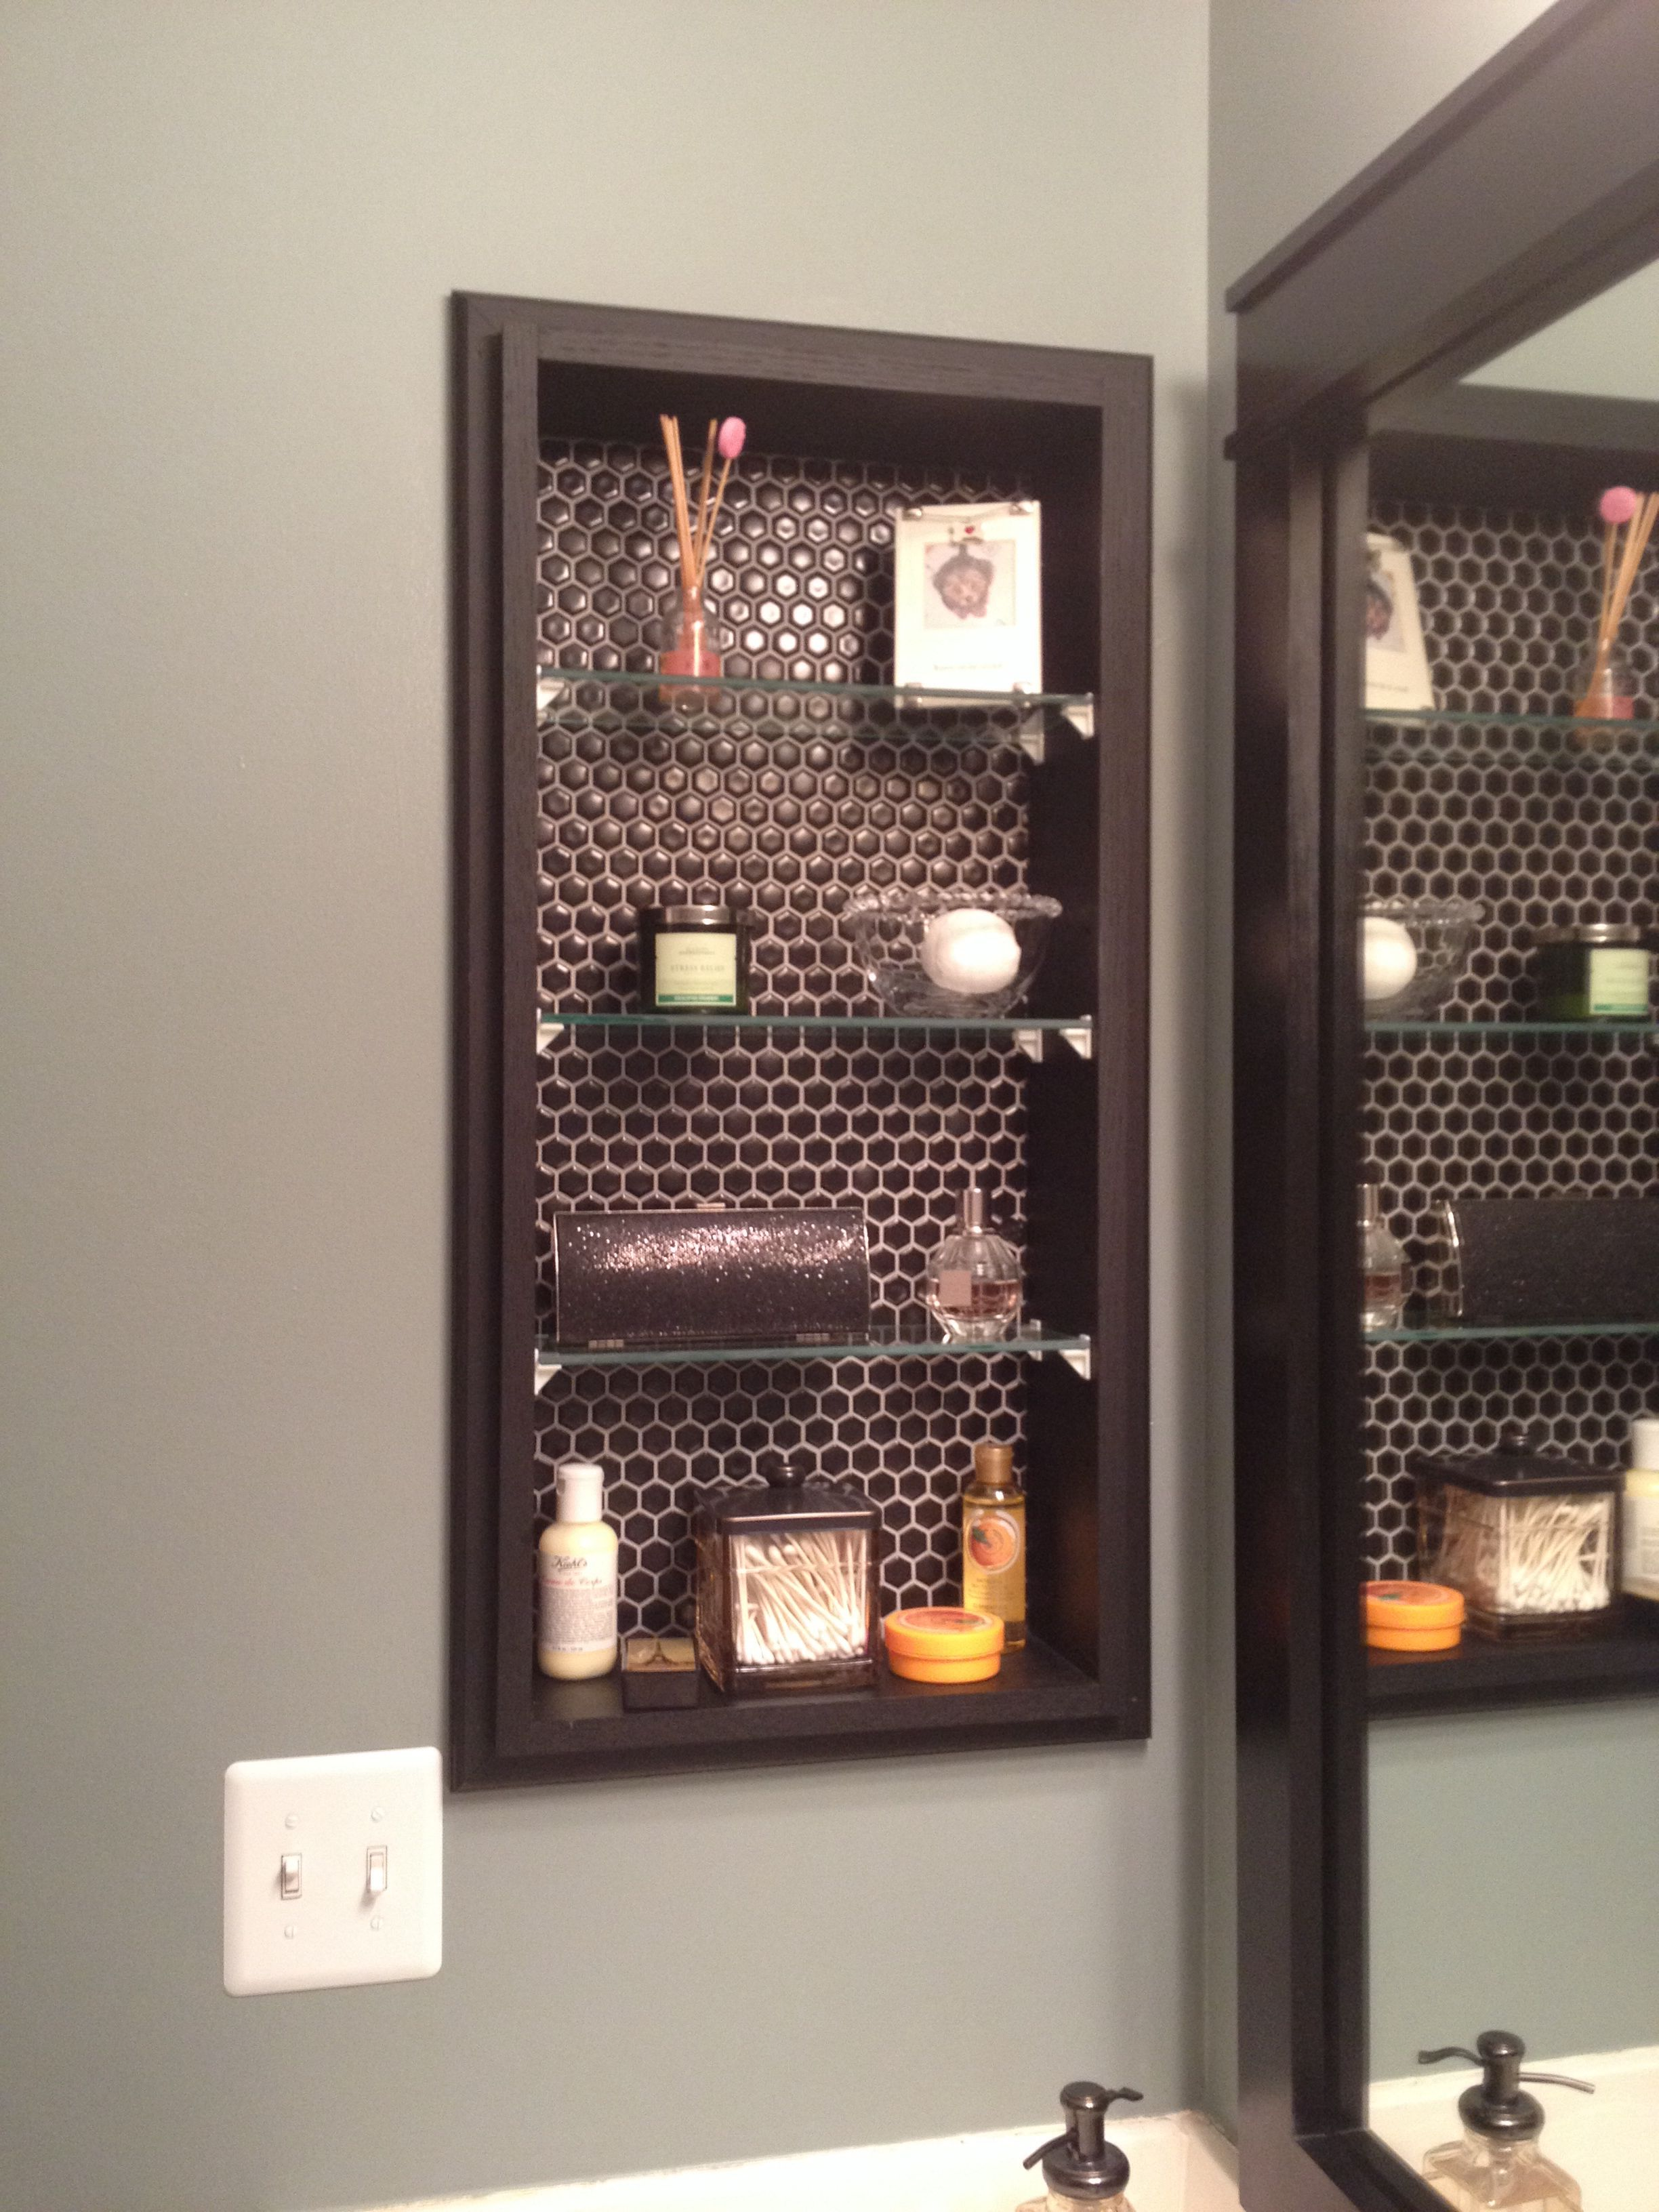 Charmant Glass Shelving To Replace Medicine Cabinet; Black Hex Tile Backing